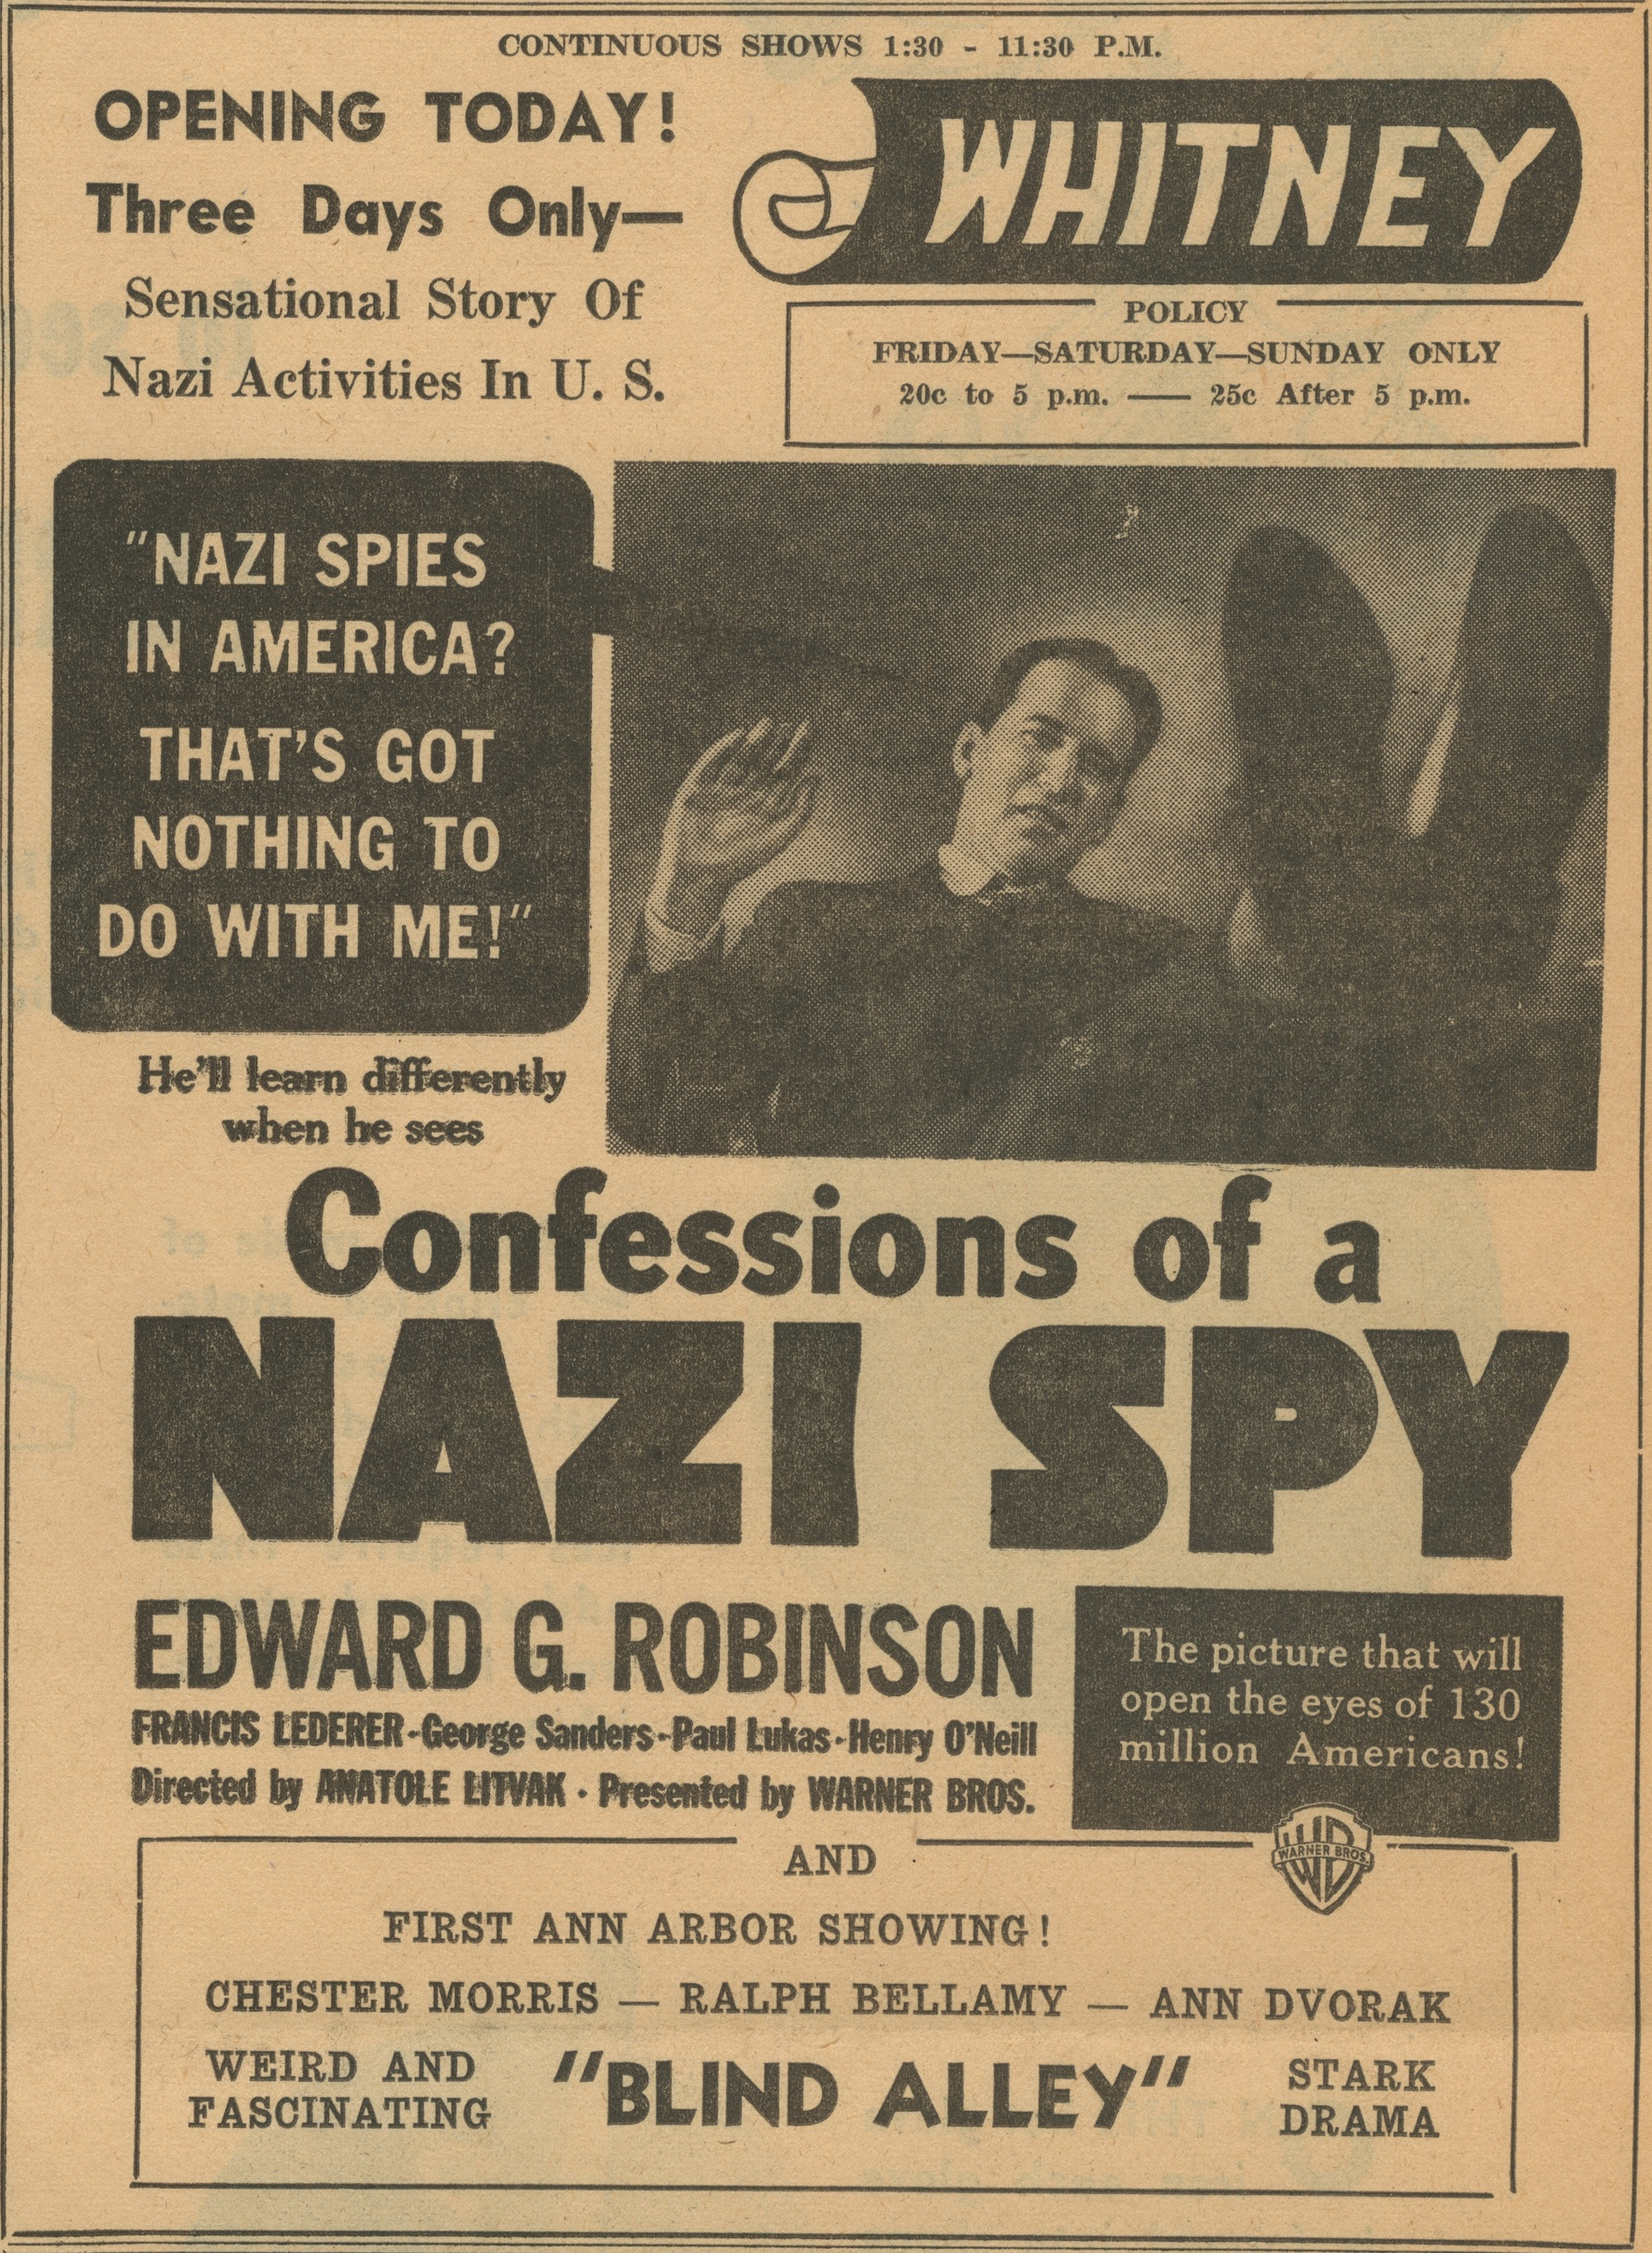 Opening Today! Three Days Only:  Confessions of a Nazi Spy Starring Edward G. Robinson  image